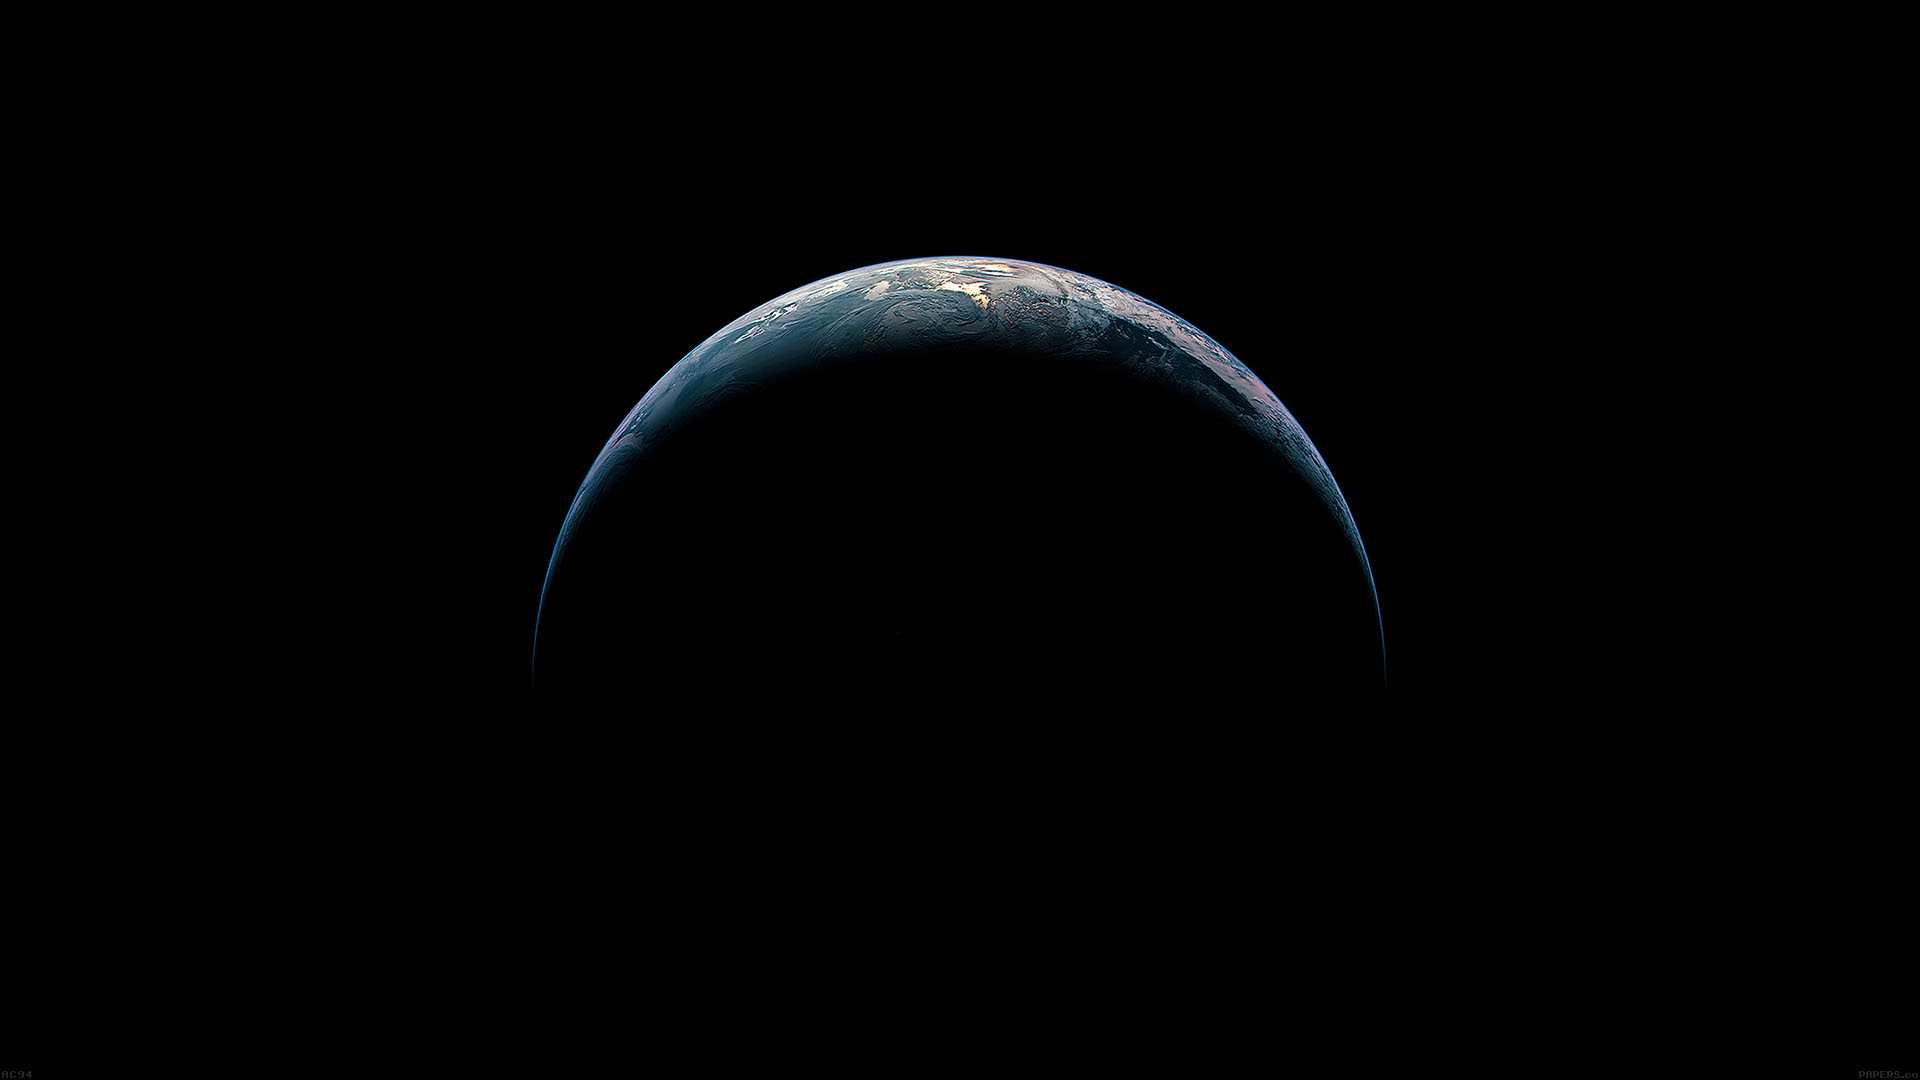 ac94 wallpaper ios8 apple iphone6 plus earth from sky